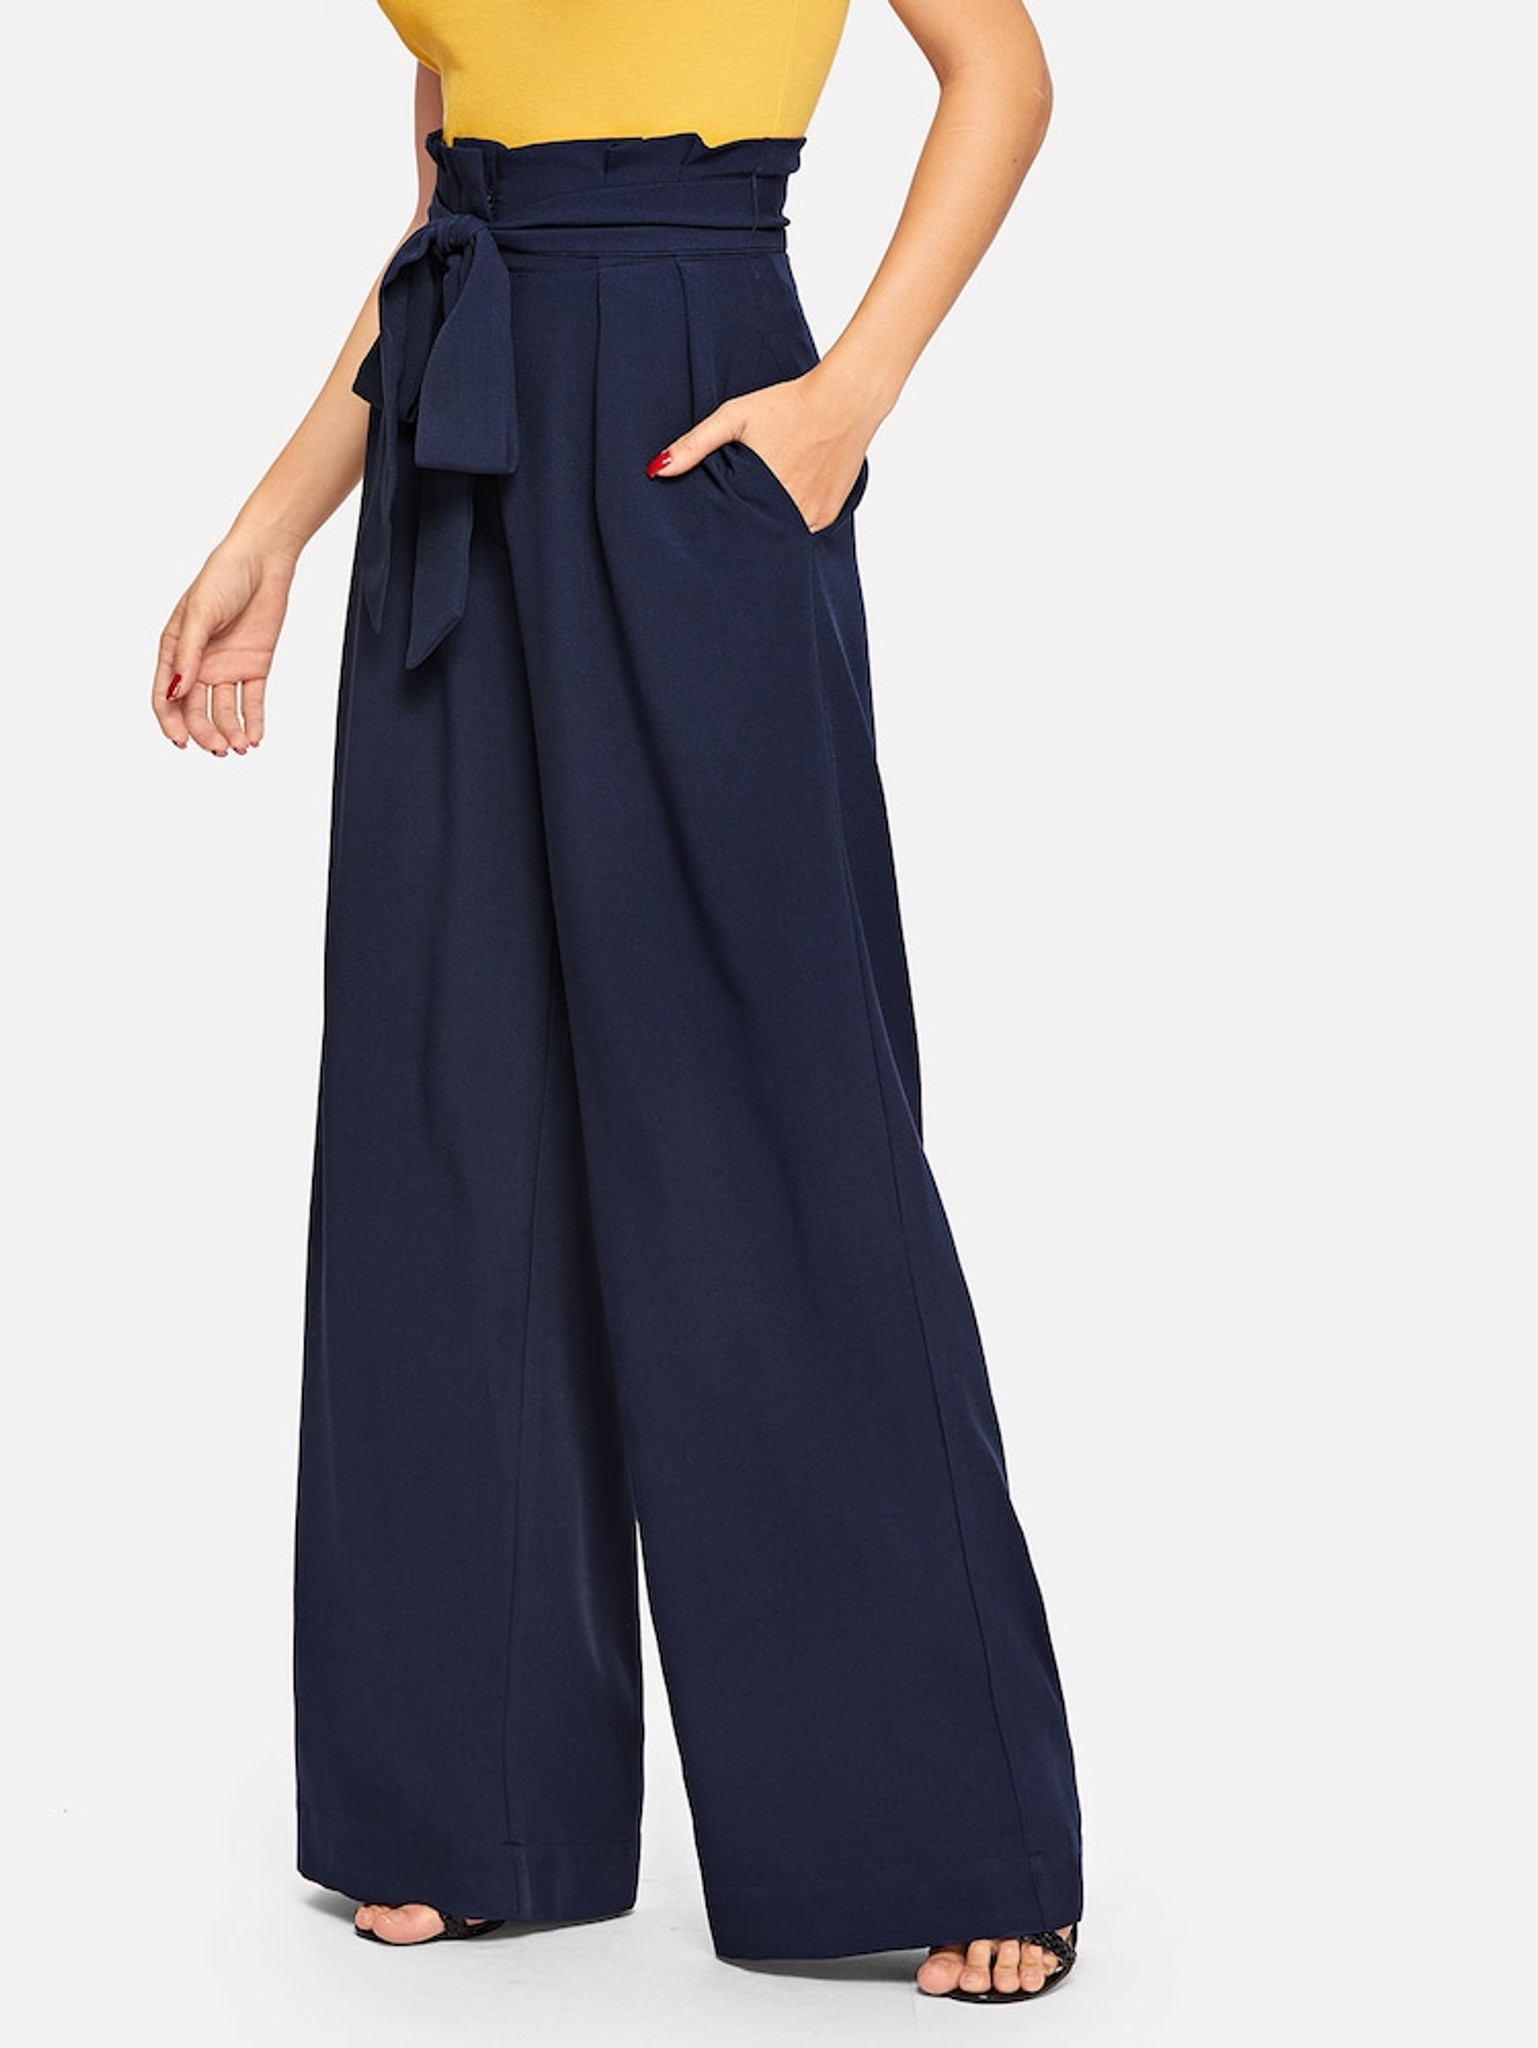 Fifth Avenue Georgette GTTWP17 Self Belted Extra Wide Leg Pants - Navy Blue